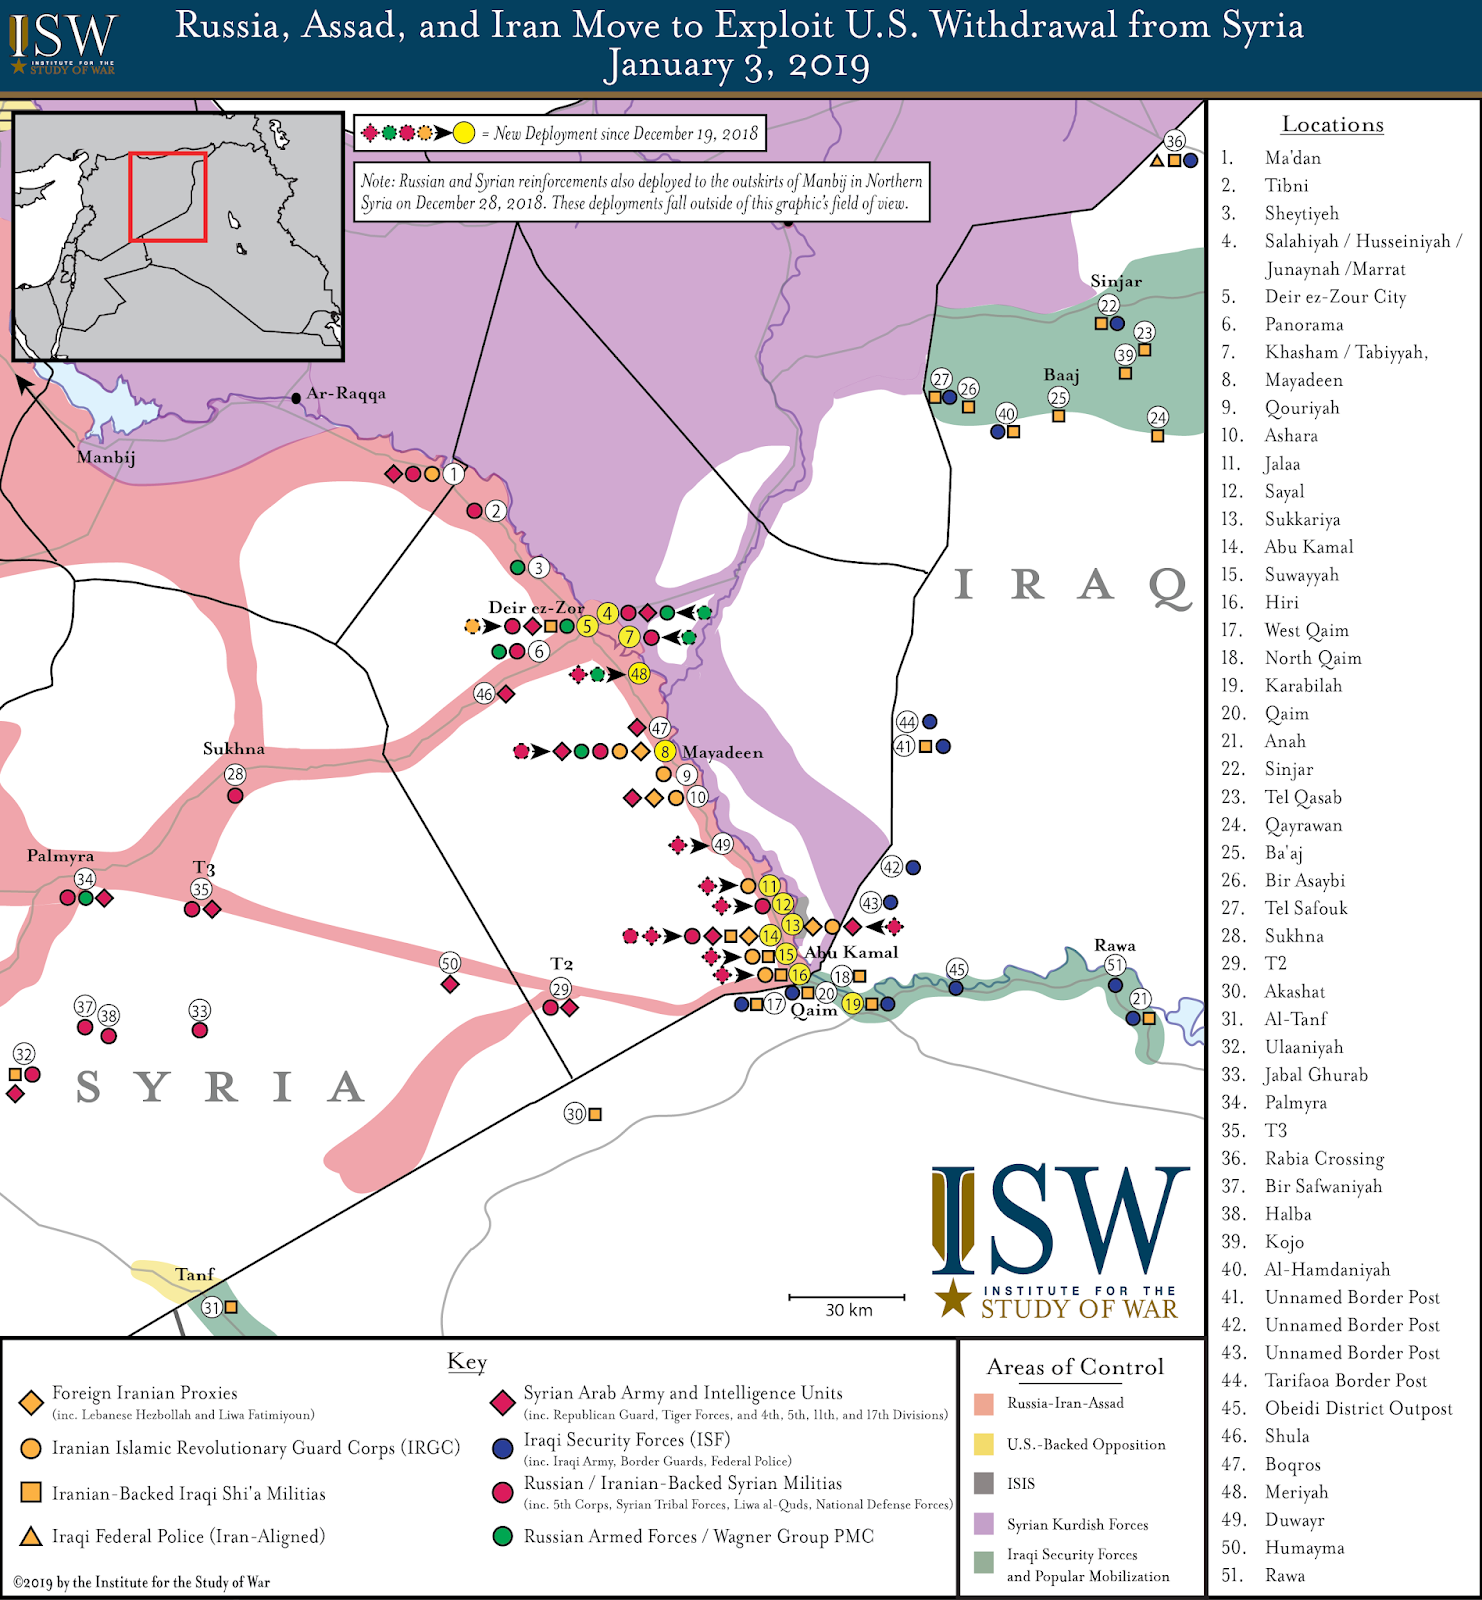 ISW Blog: Russia and Iran Prepare For New Syria Battlefield